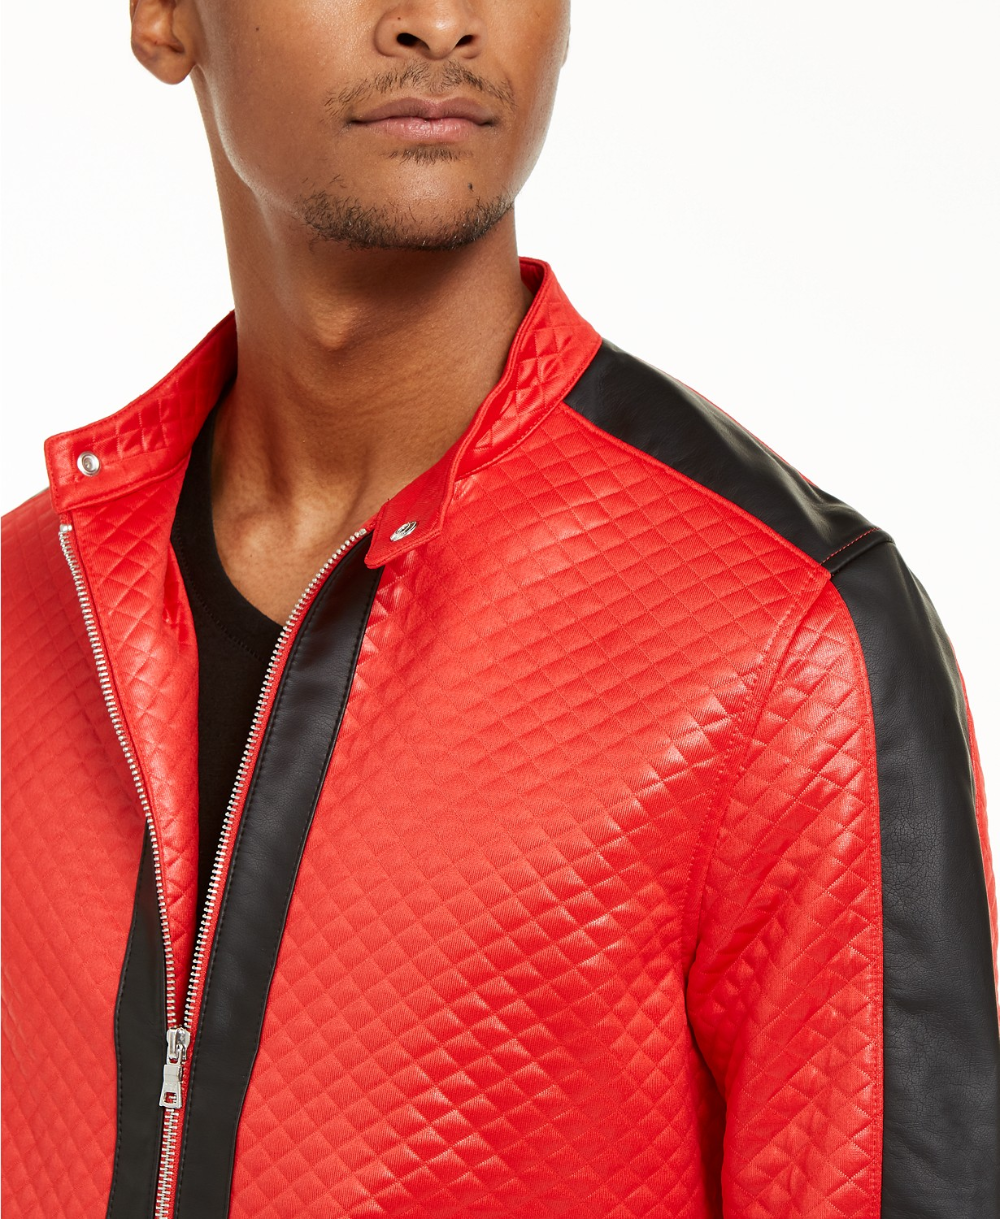 Inc International Concepts Inc Men S Diamond Quilted Faux Leather Jacket Created For Macy S Reviews Coats Jackets Faux Leather Jackets Men Mens Jackets [ 1219 x 1000 Pixel ]